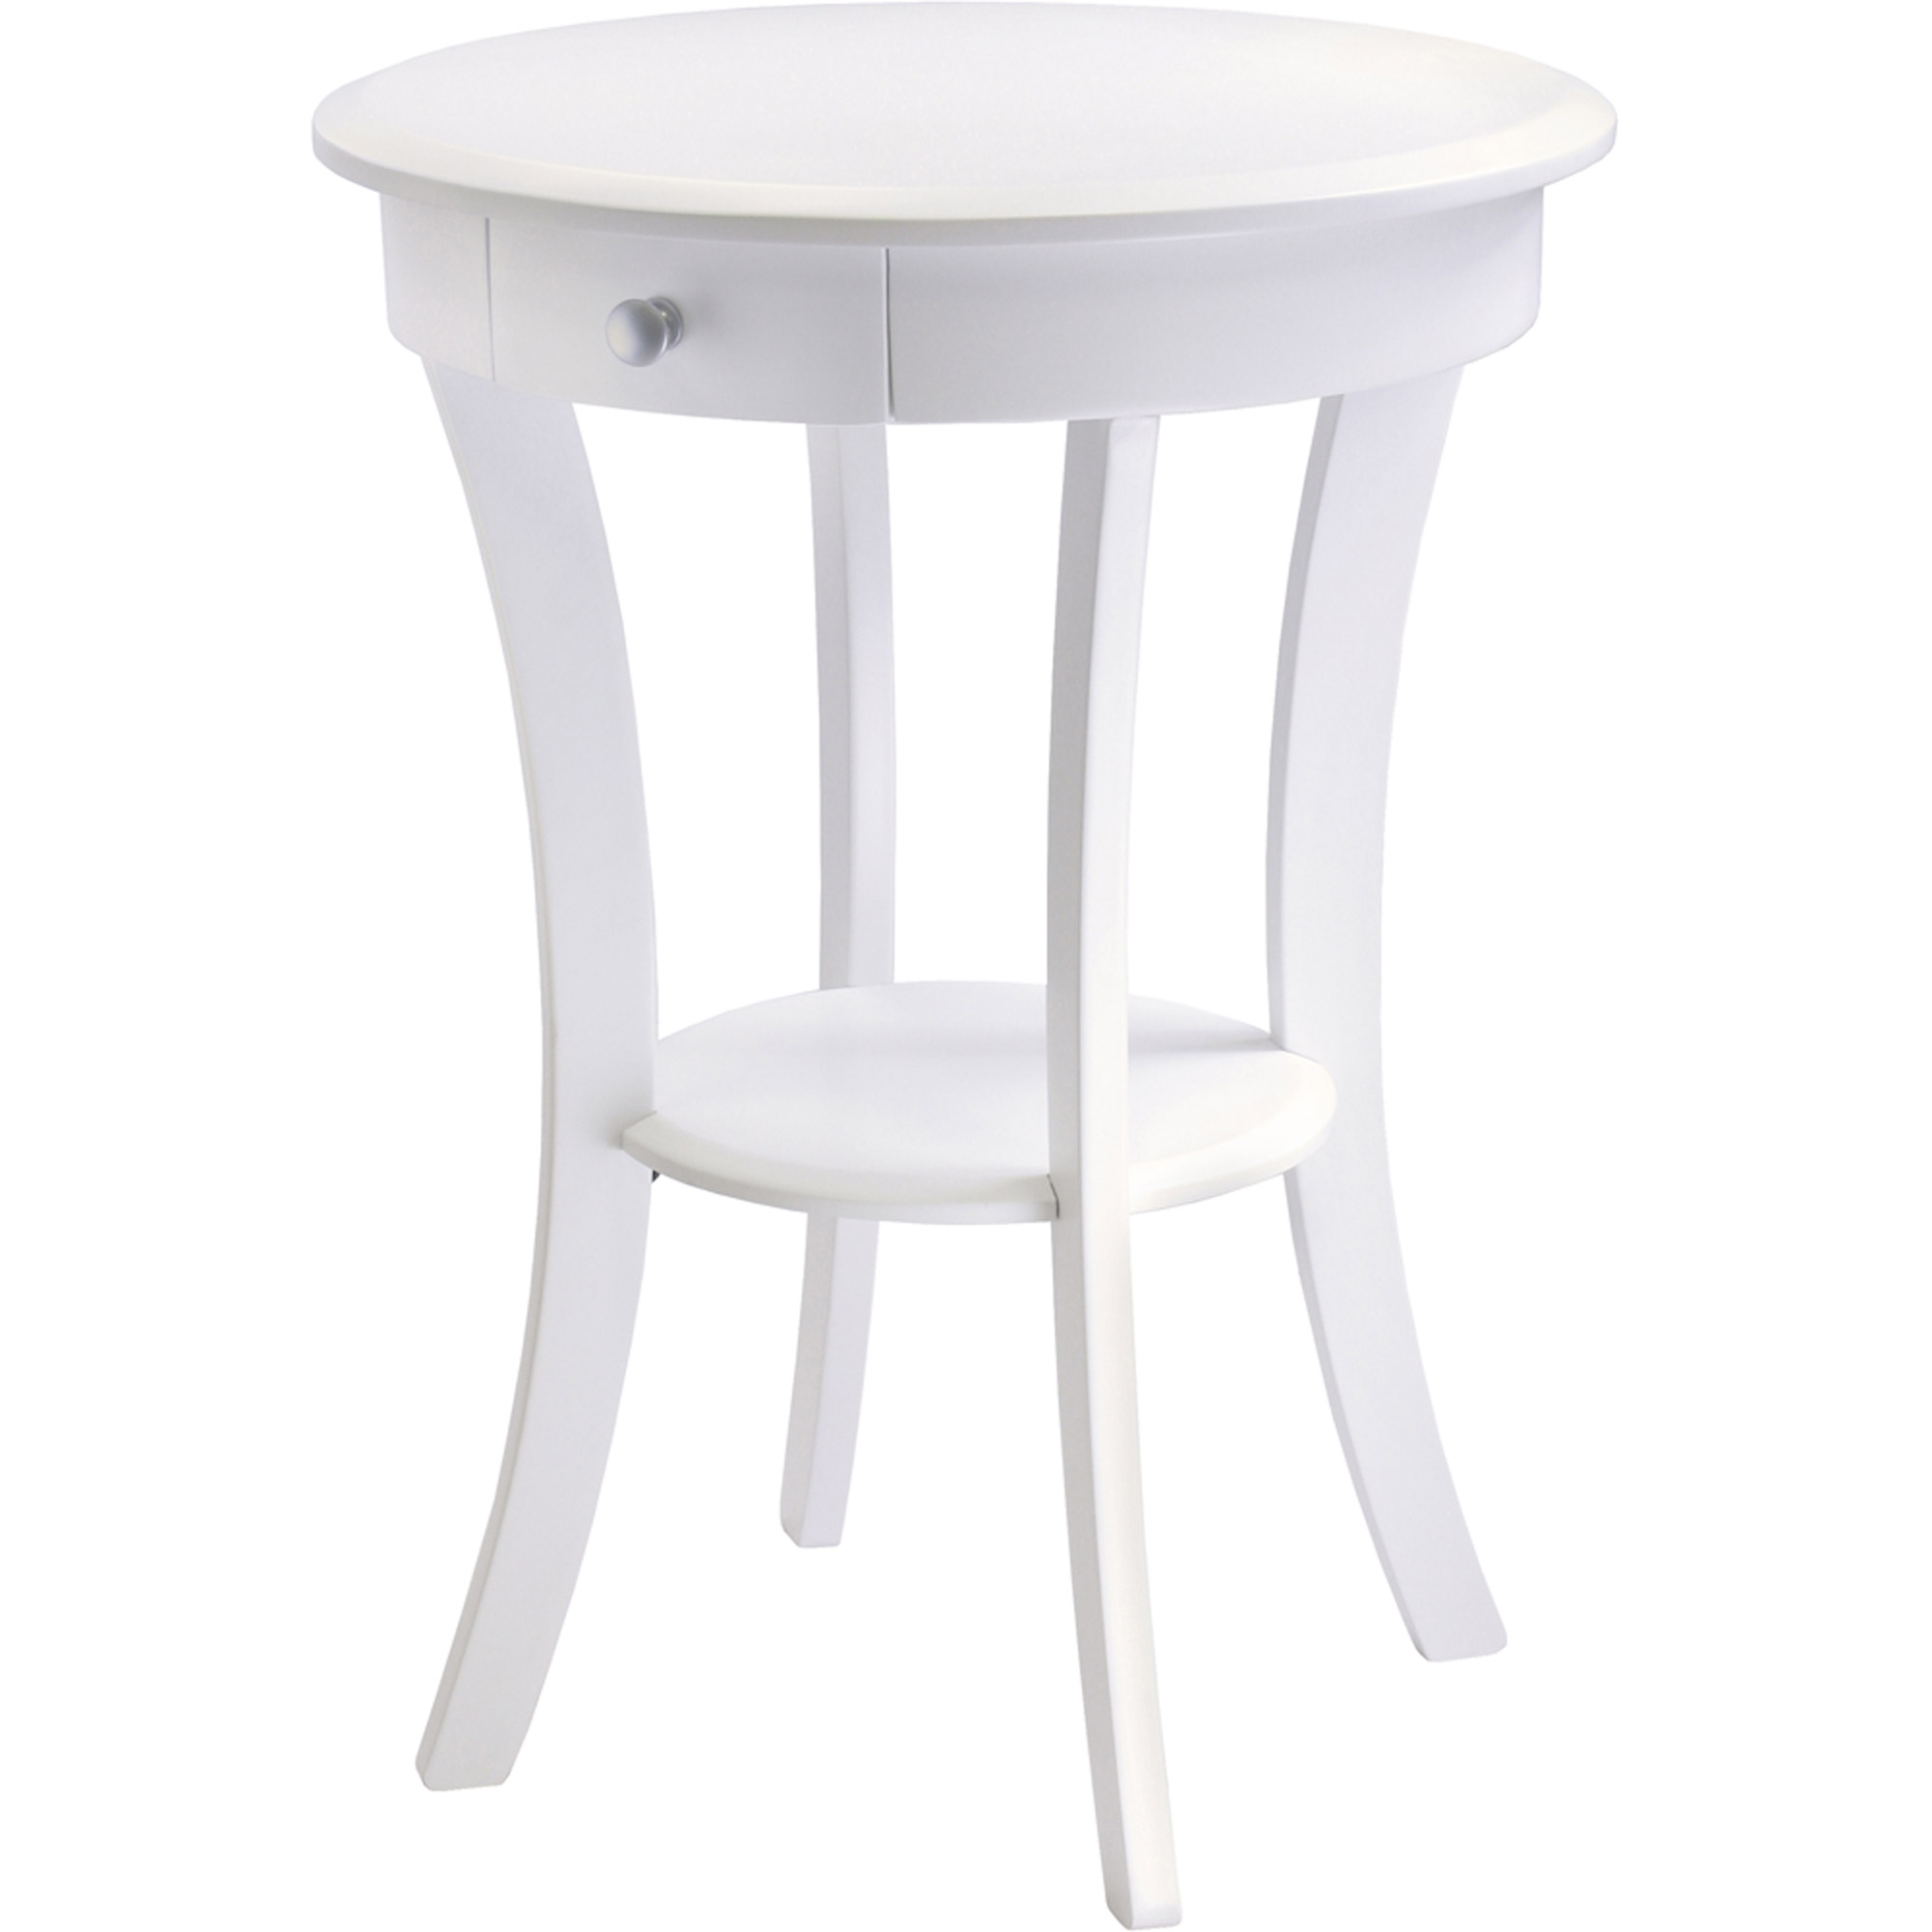 chairs glas ana off and tables dining round high tablecloths table small granite pedestal corner toppers argos whitewash kitchen antique white glass distressed rent melamine